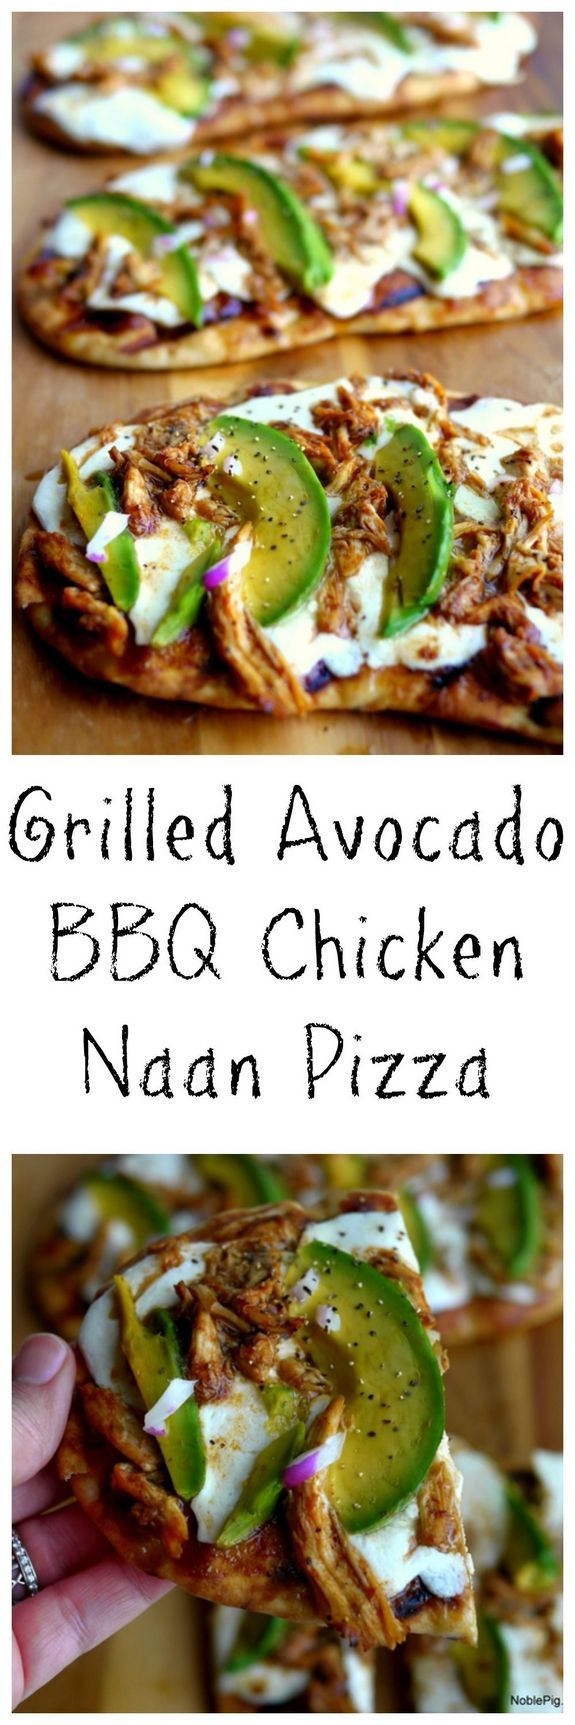 Grilled Avocado Barbecue Chicken Naan Pizza - A simple way to enjoy pizza on the grill with naan bread as your base - Barbecue sauce, fresh mozzarella, rotisserie chicken and delicious California avocado make this a perfect appetizer or a meal which you could serve with a side salad - Please click for the full recipe from Noble Pig #pizzawithatwist...x